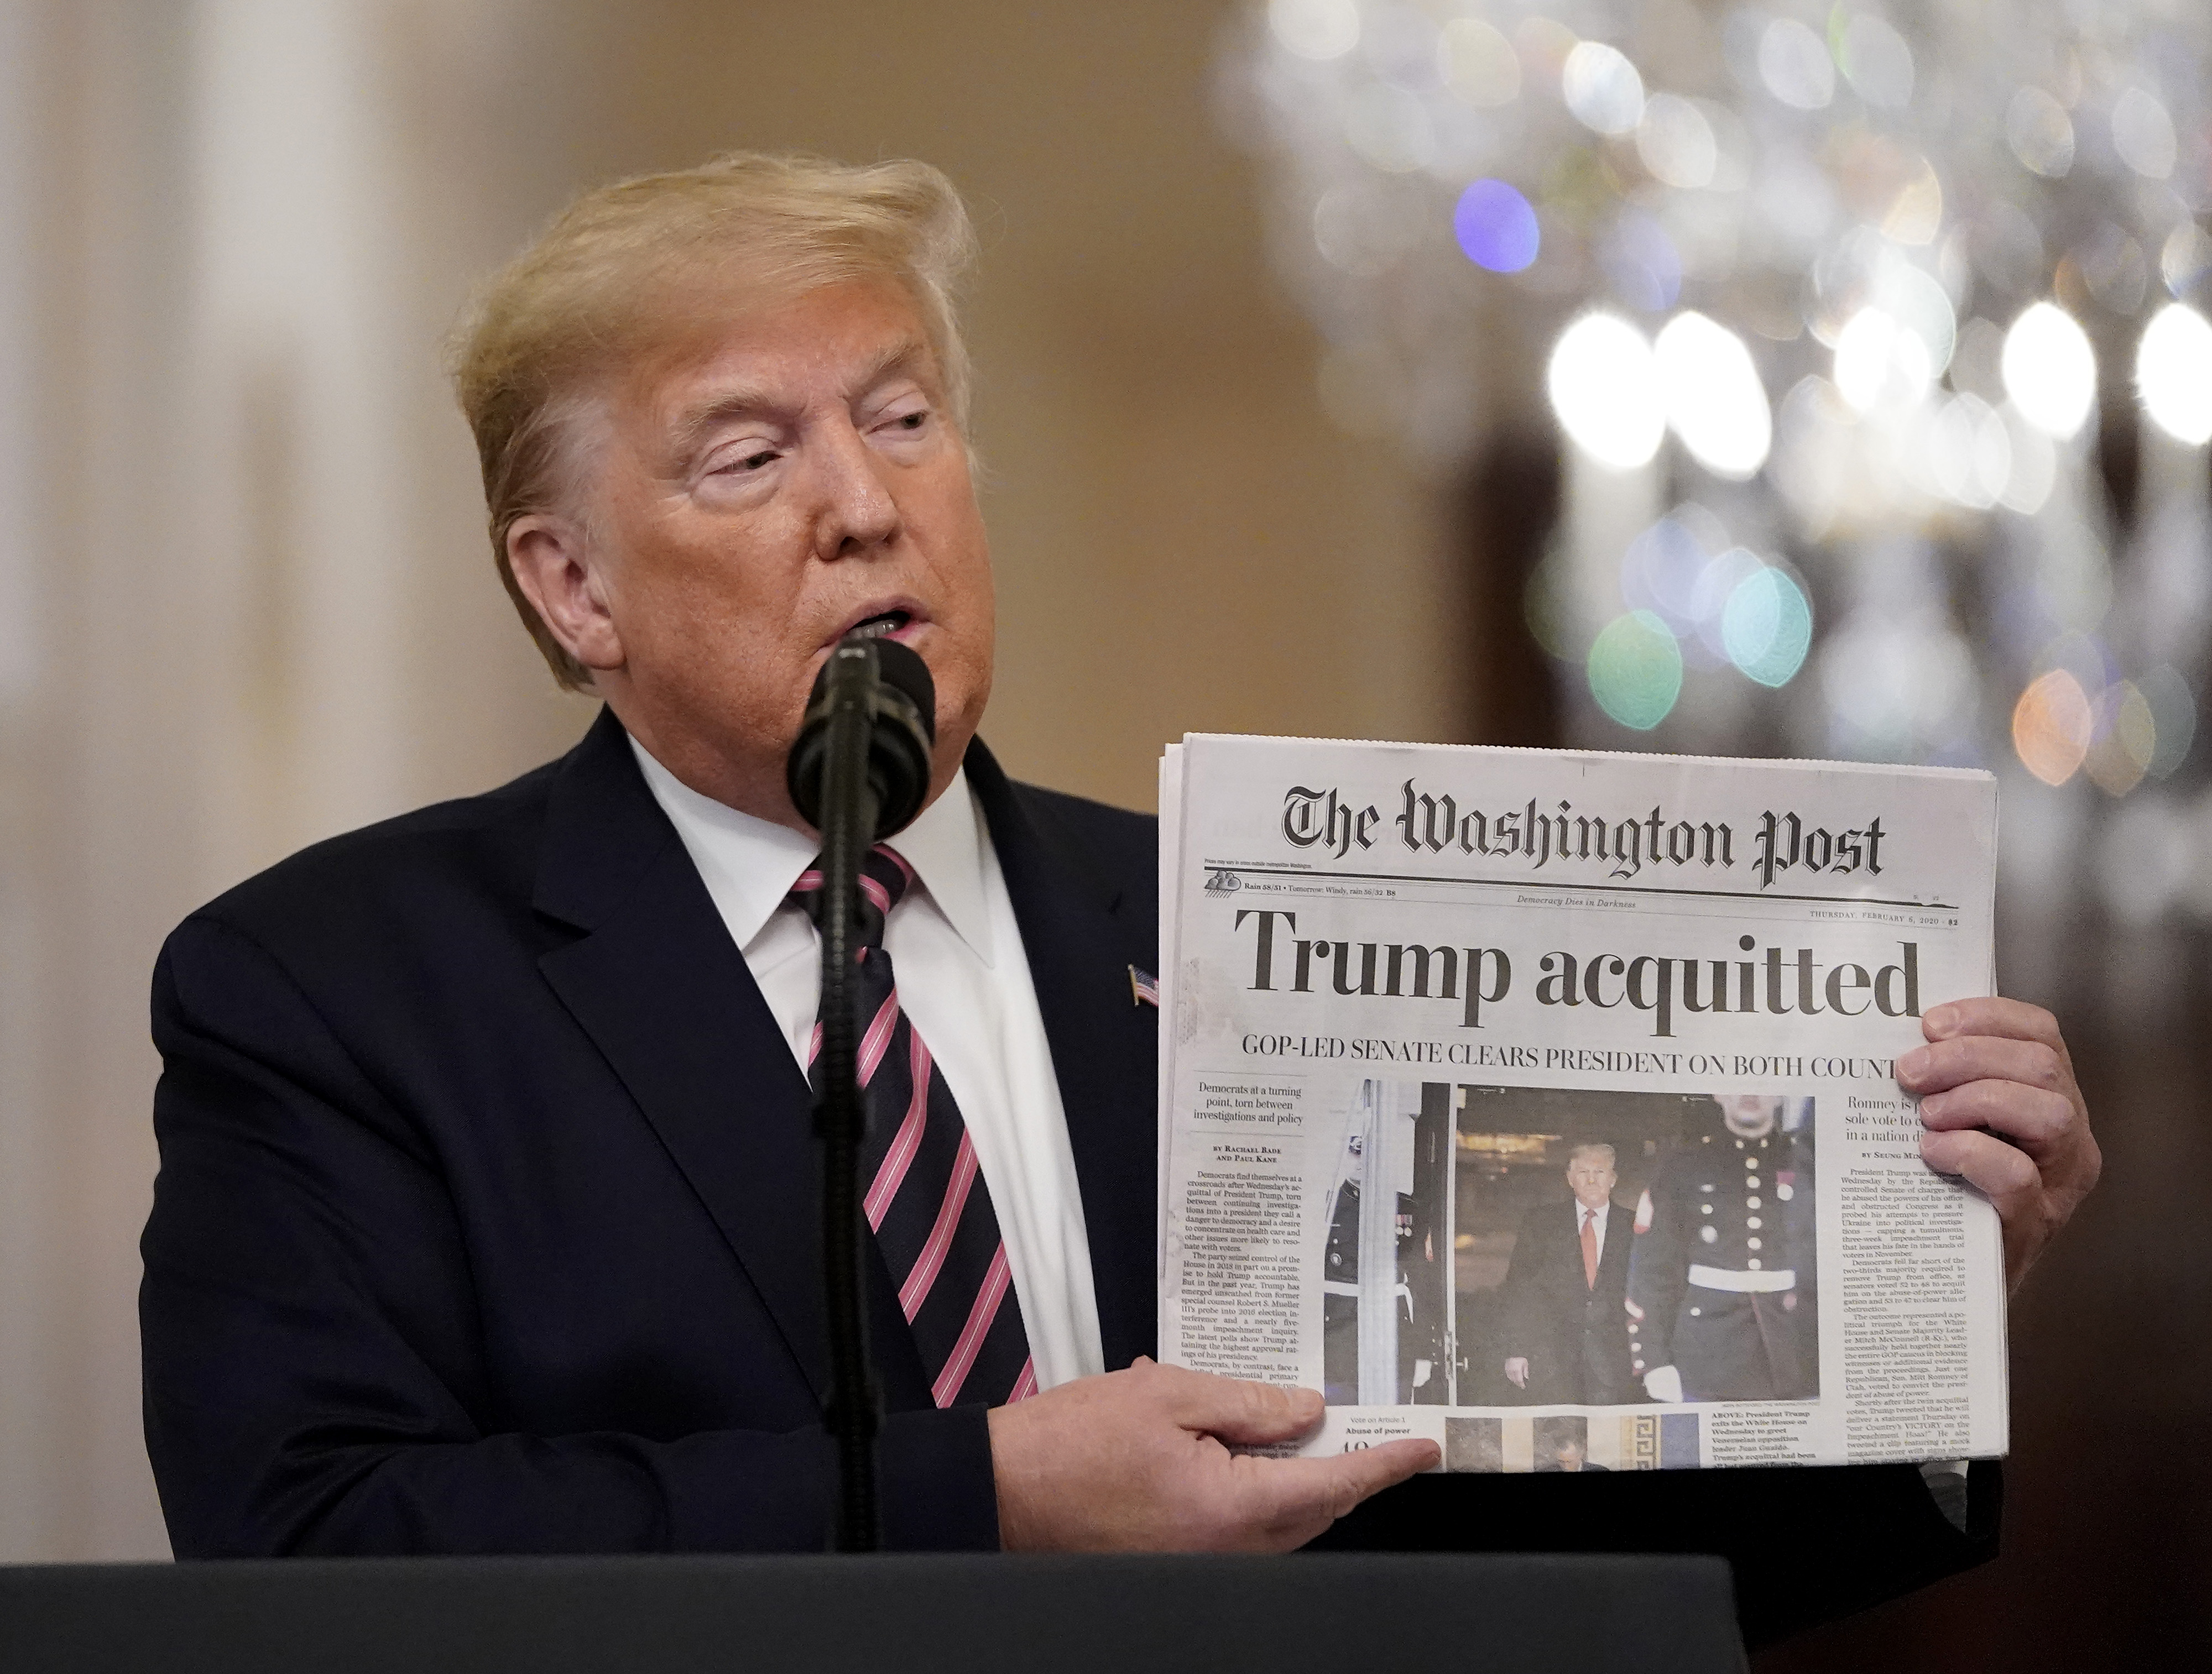 U.S. President Donald Trump holds a copy of The Washington Post as he speaks in the East Room of the White House one day after the U.S. Senate acquitted on two articles of impeachment, ion February 6, 2020 in Washington, DC. (Drew Angerer/Getty Images)